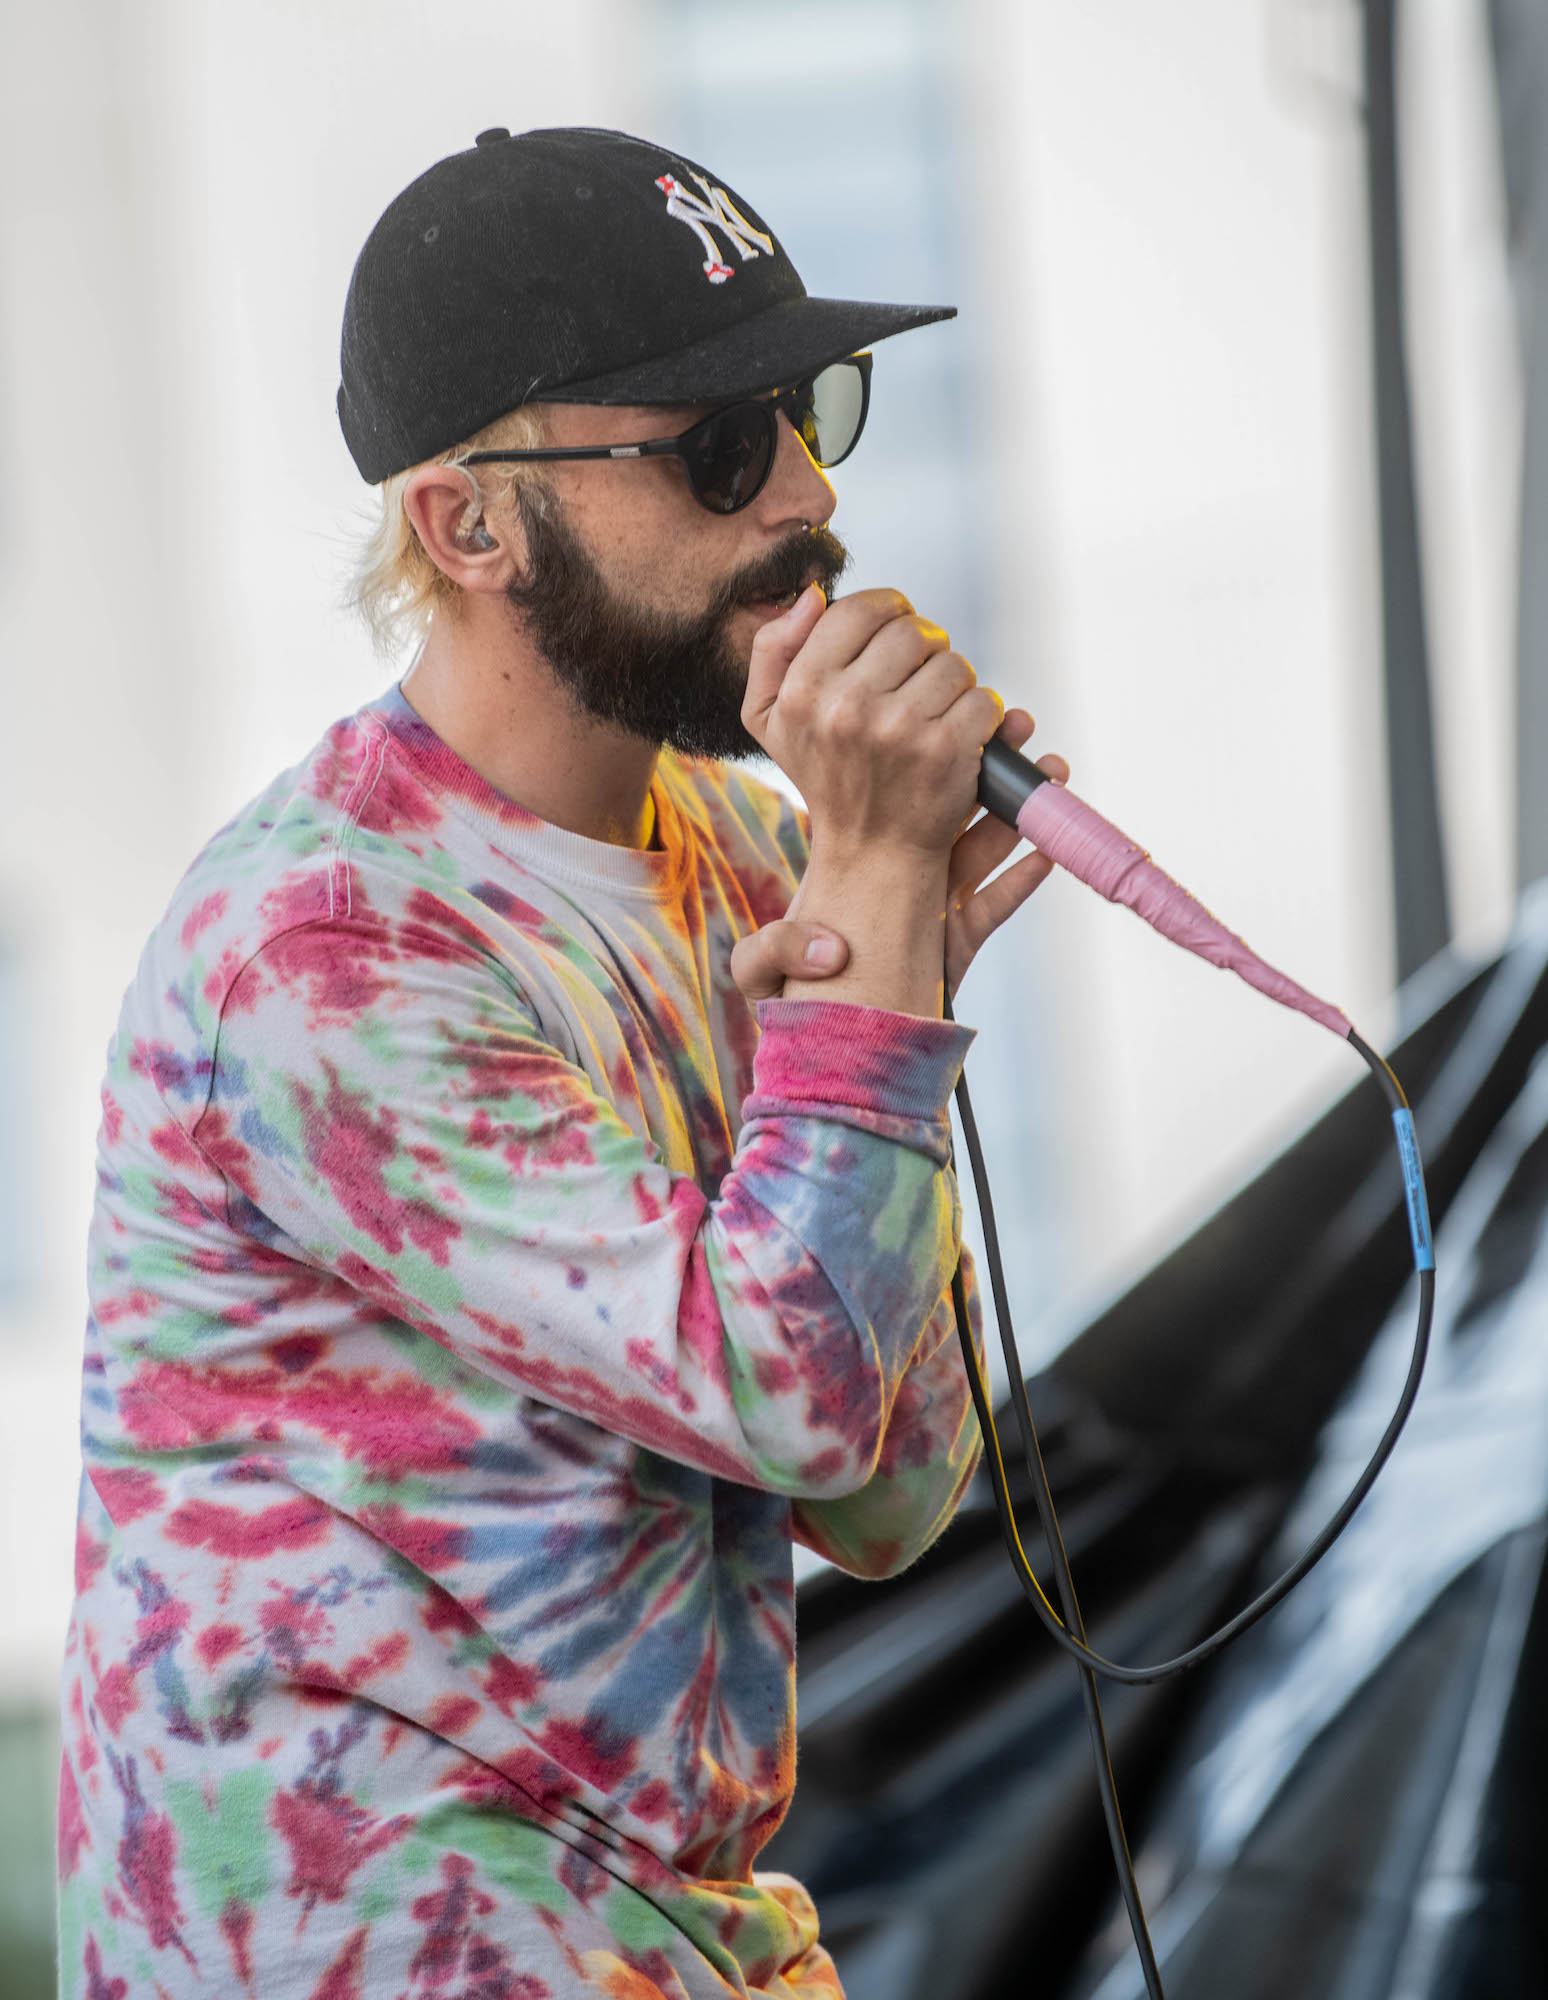 Oso Oso Live at Pitchfork [GALLERY] 11